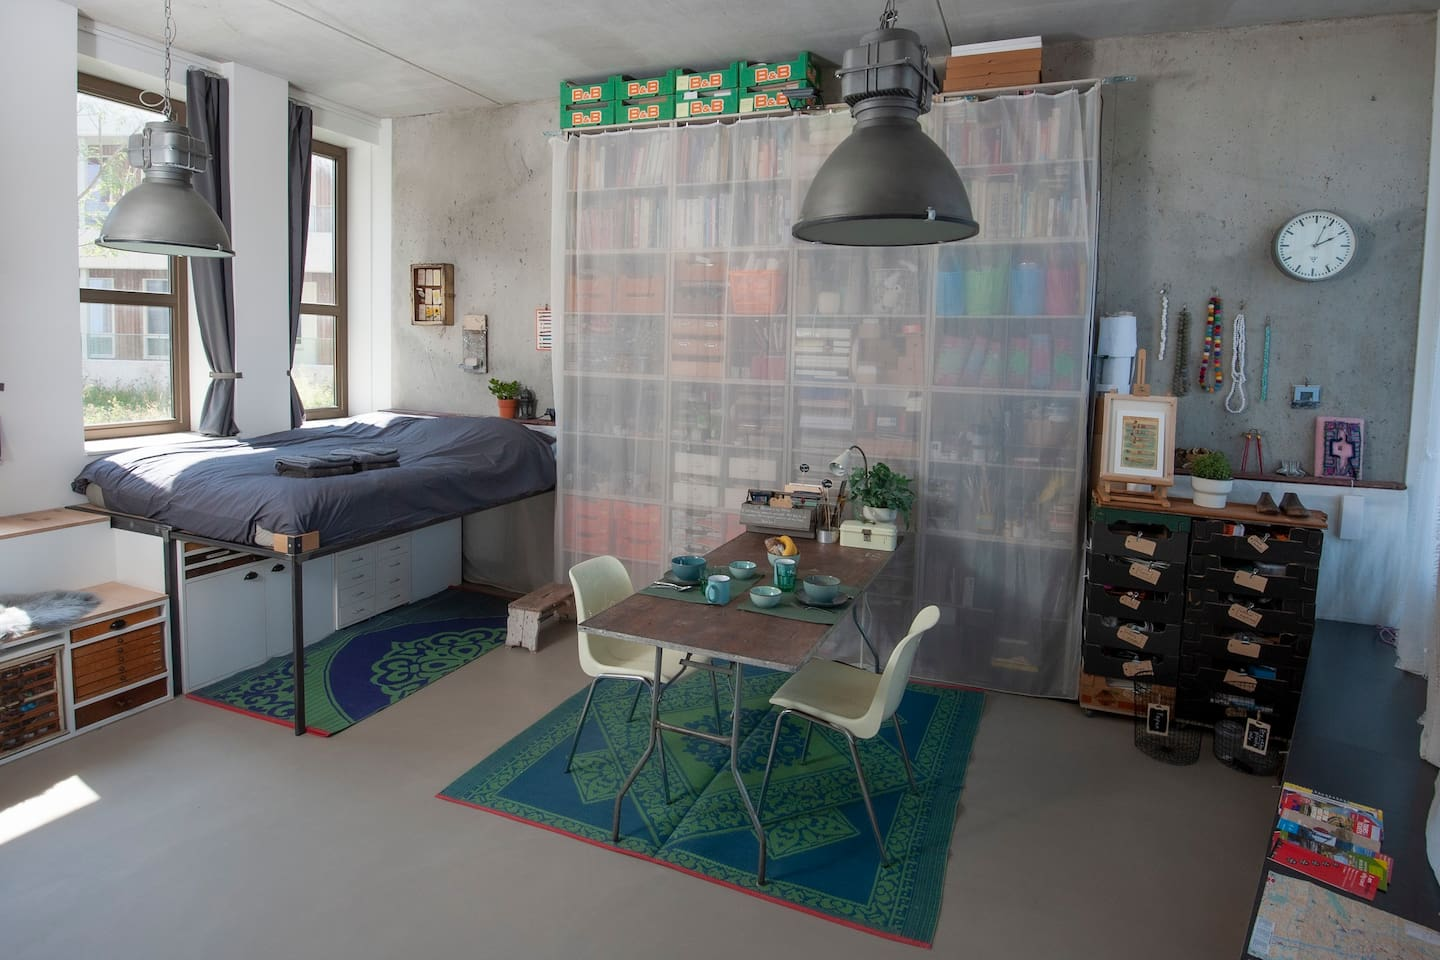 Spacious and light artistic studio/atelier wich I turn into a comfortable sleep and living room for my guest, in between my artistic projects!